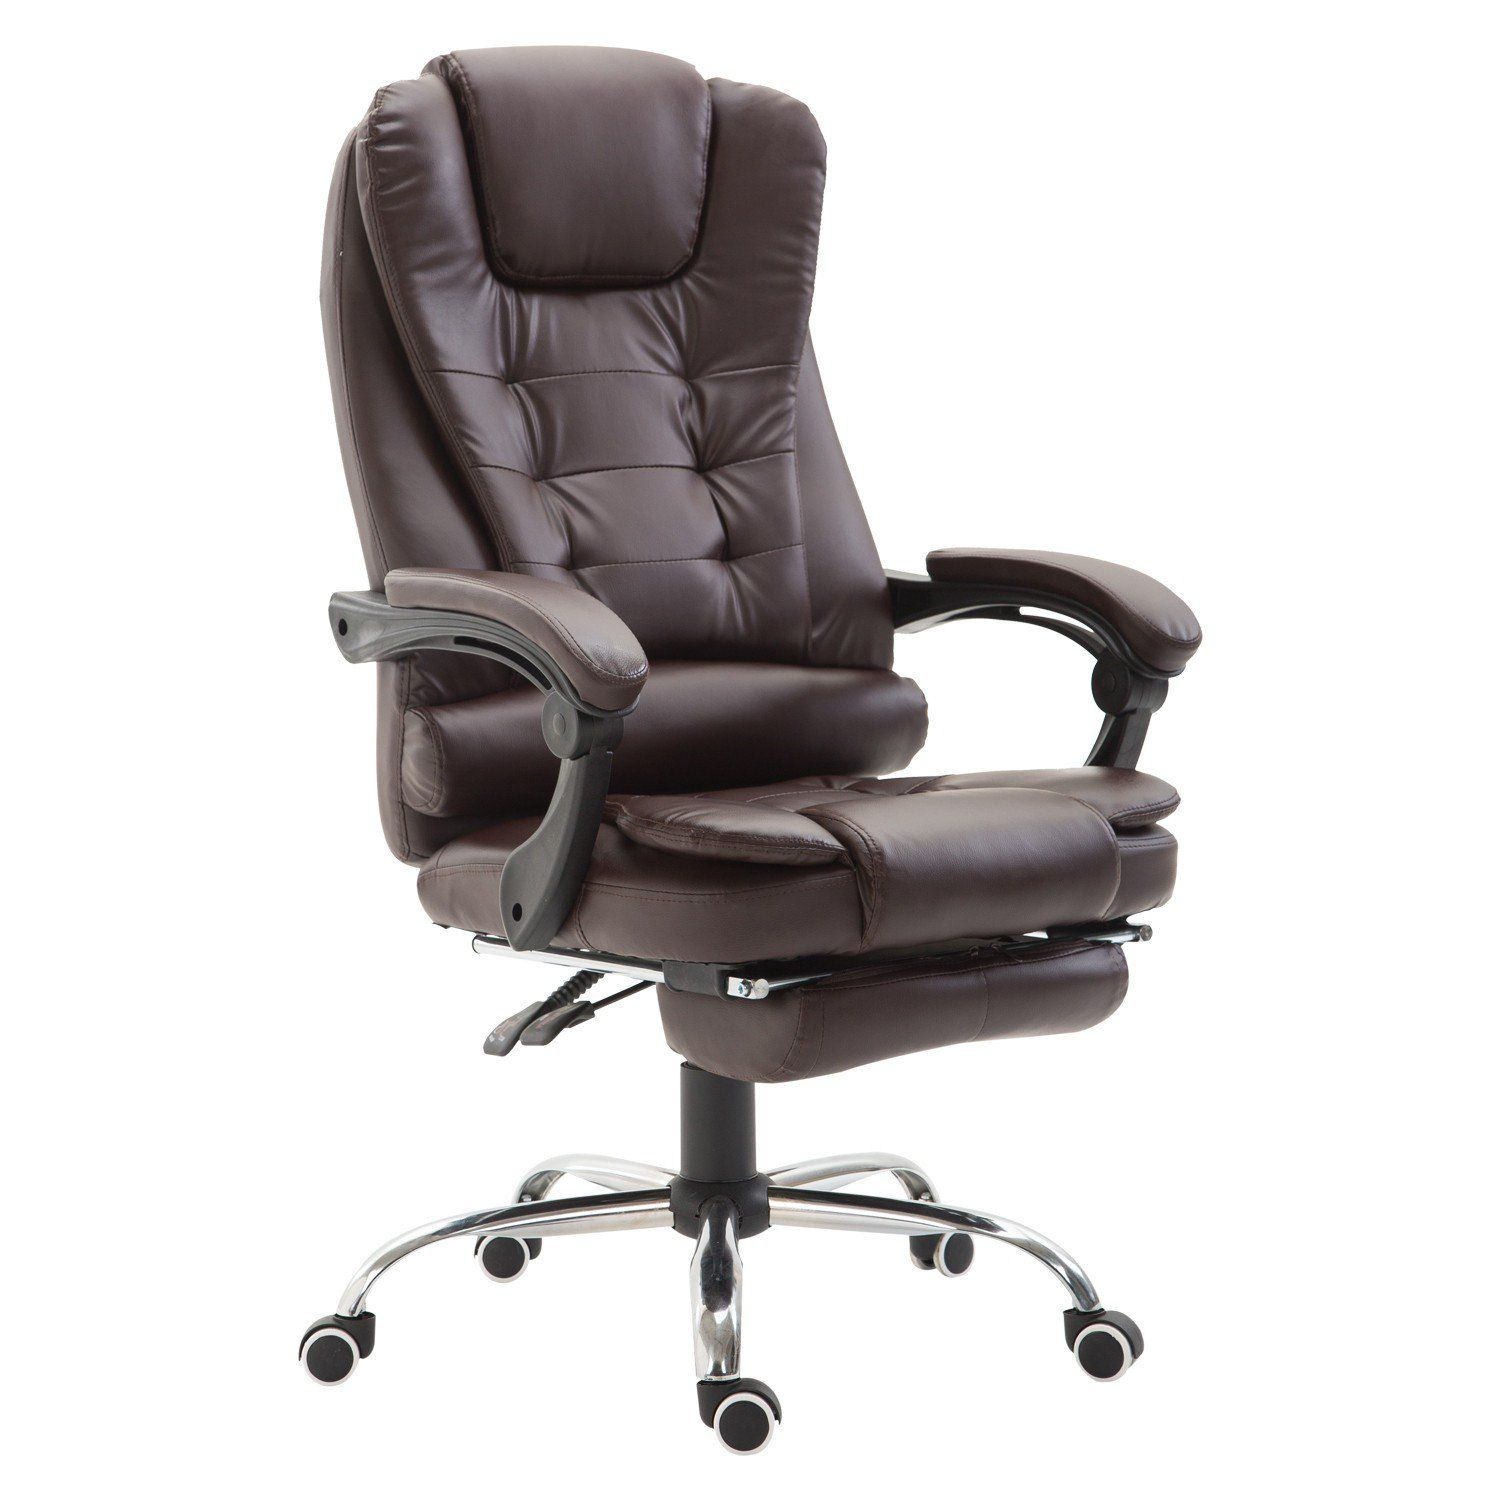 50+ Home Goods Office Chair - Best Furniture Gallery Check more at ...